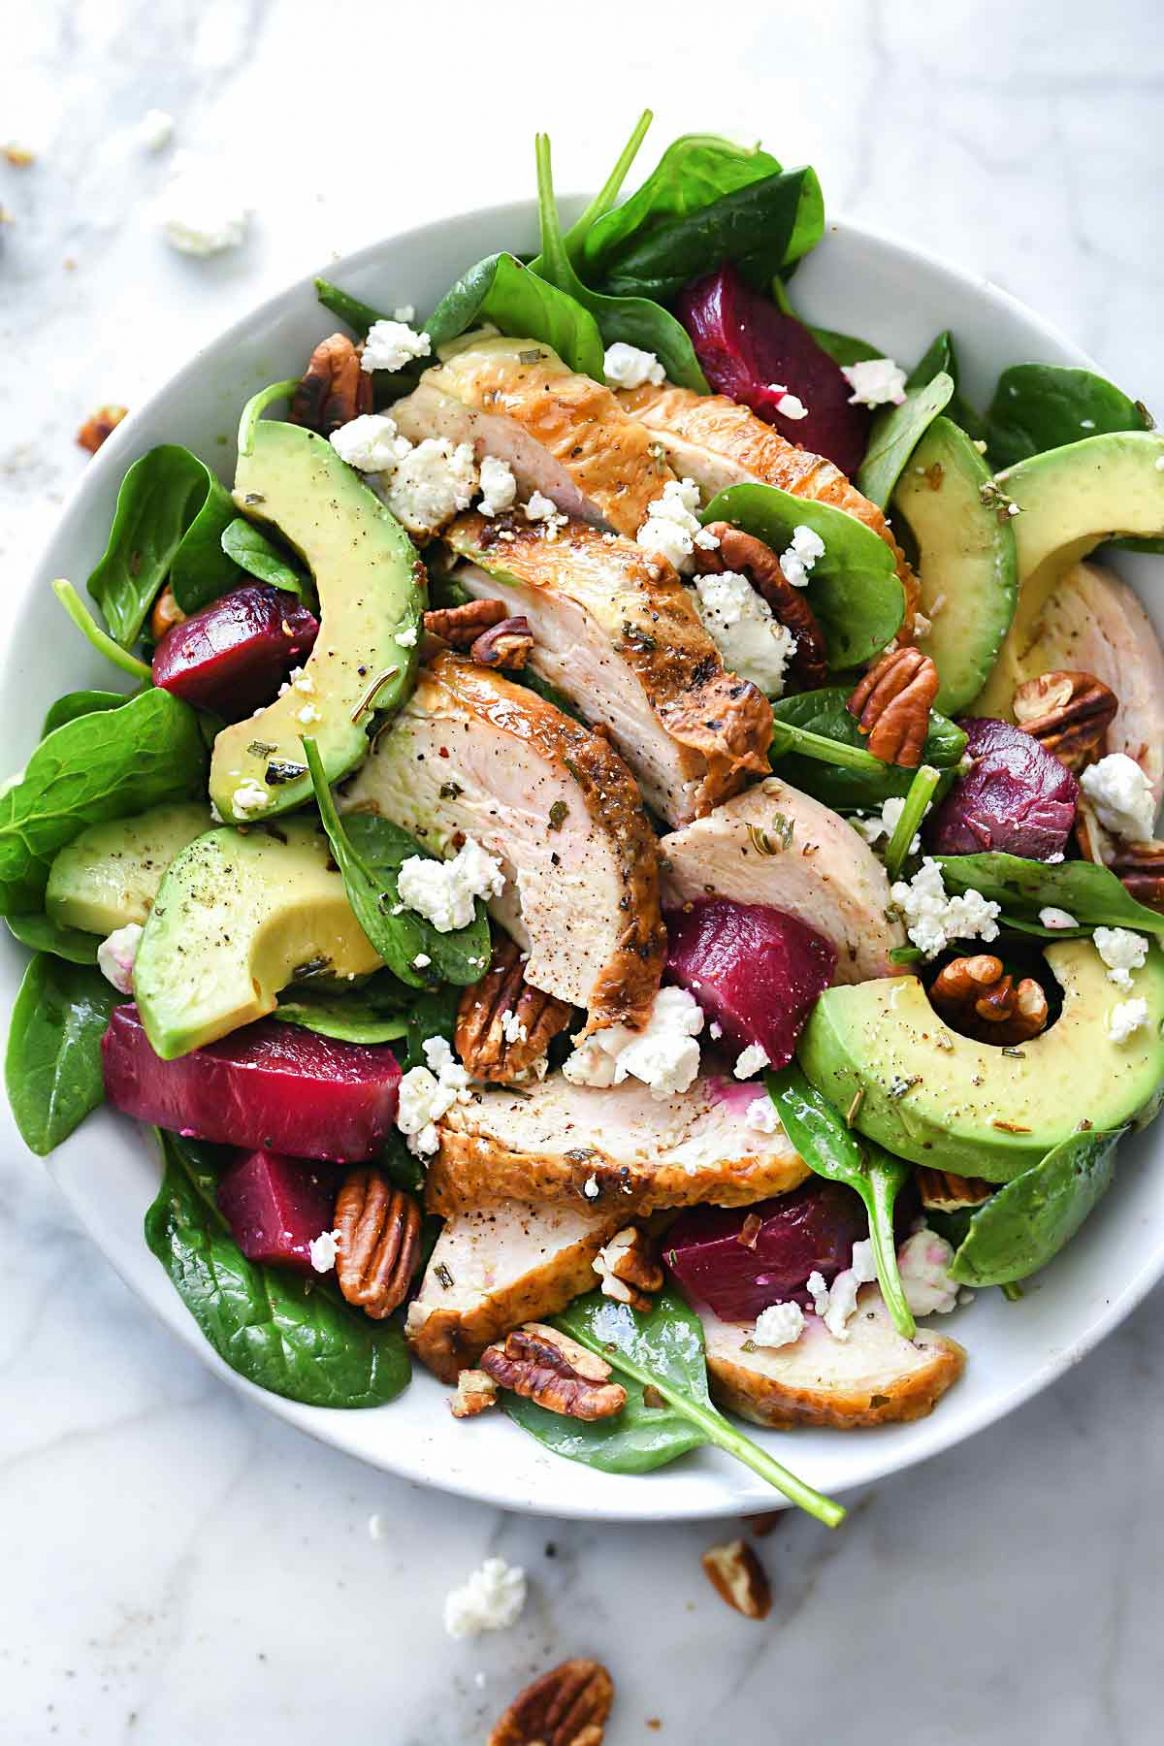 Roasted Beet, Avocado and Goat Cheese Spinach Salad with Chicken